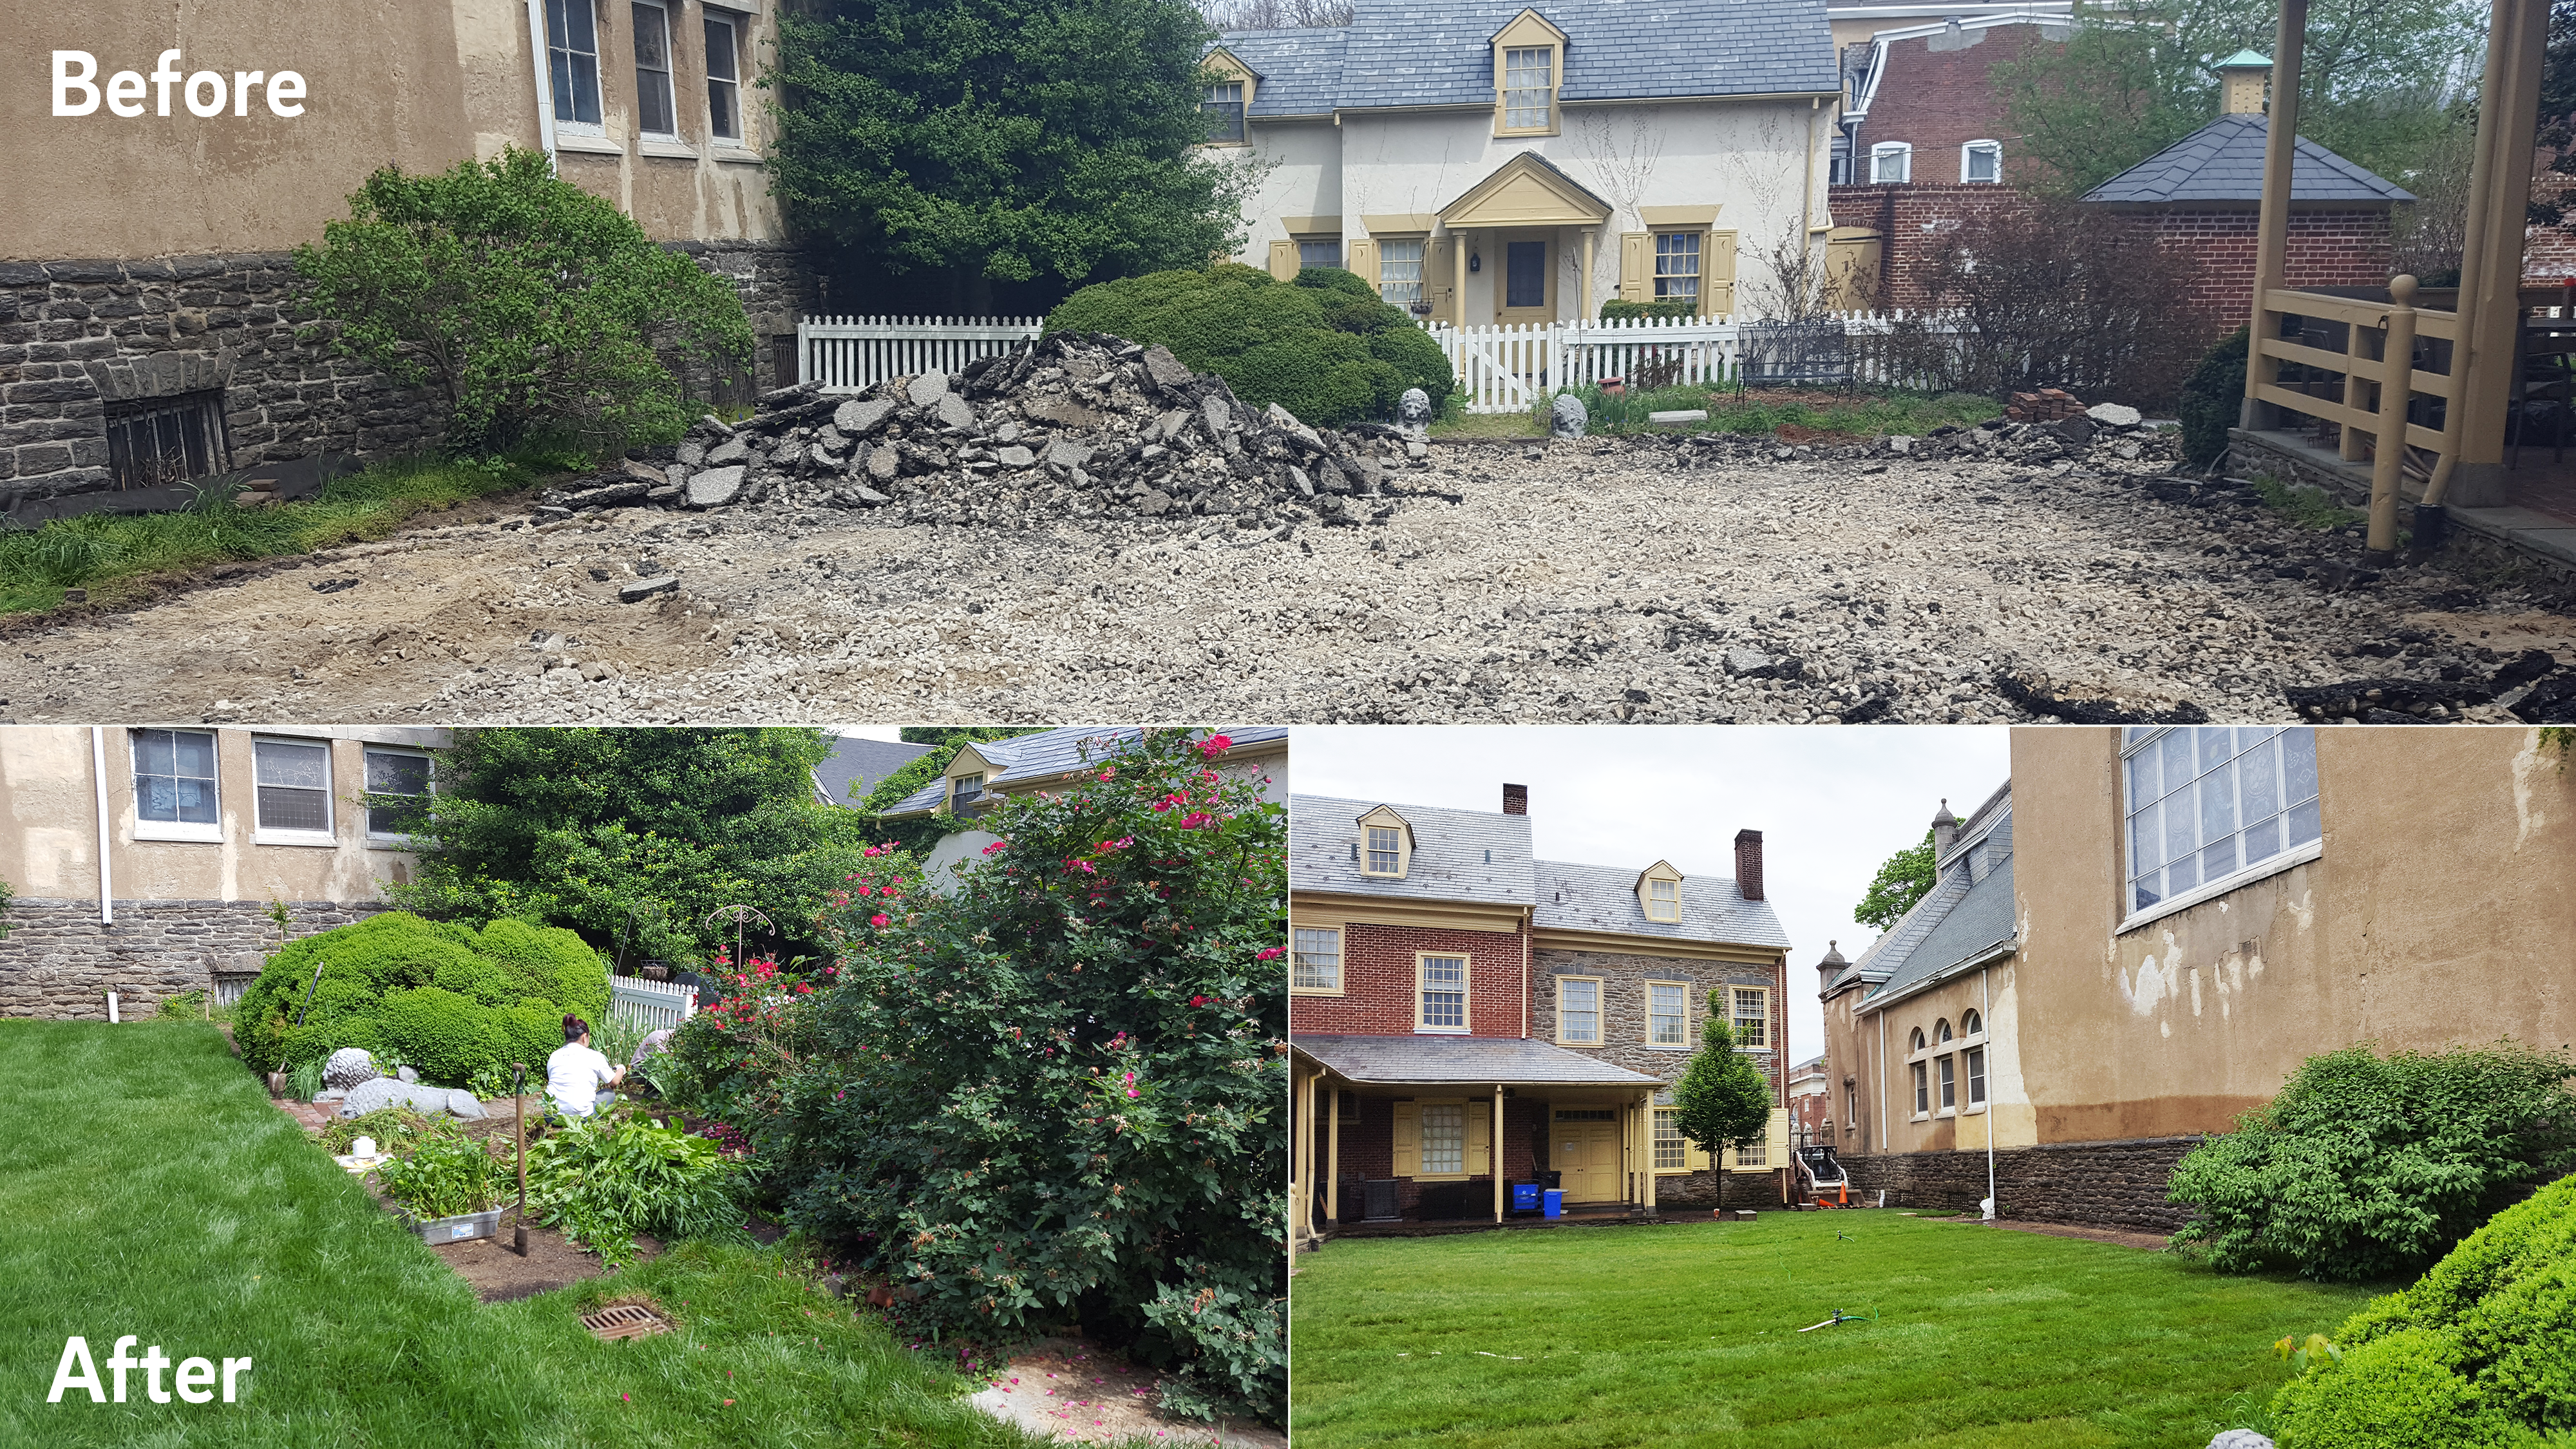 Top: a view of the courtyard area before the upgrade shows broken-up asphalt between charming historic buildings. Bottom Left: volunteers hard at work planting the new rain garden. Bottom Right: a view of the courtyard area after the upgrade shows a luscious green space with grass and natural landscaping replacing the former impervious pavement.